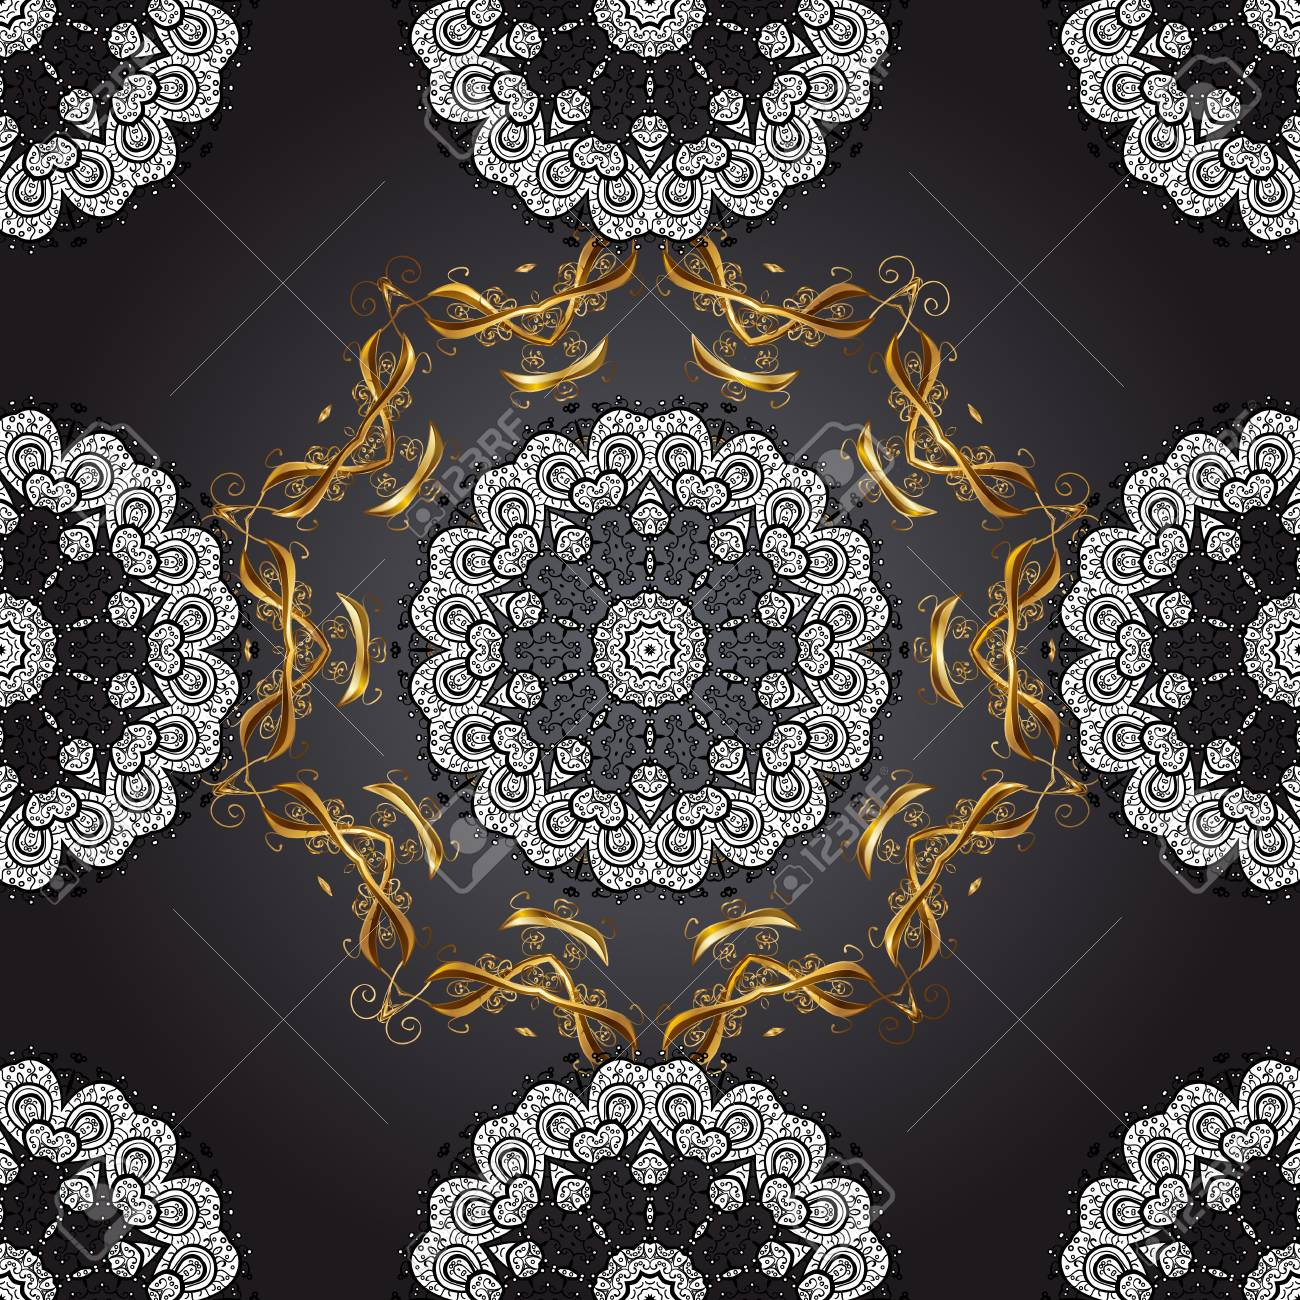 Paisleys Elegant Floral Vector Seamless Pattern Background Wallpaper Illustration With Vintage Stylish Beautiful Modern 3d Line